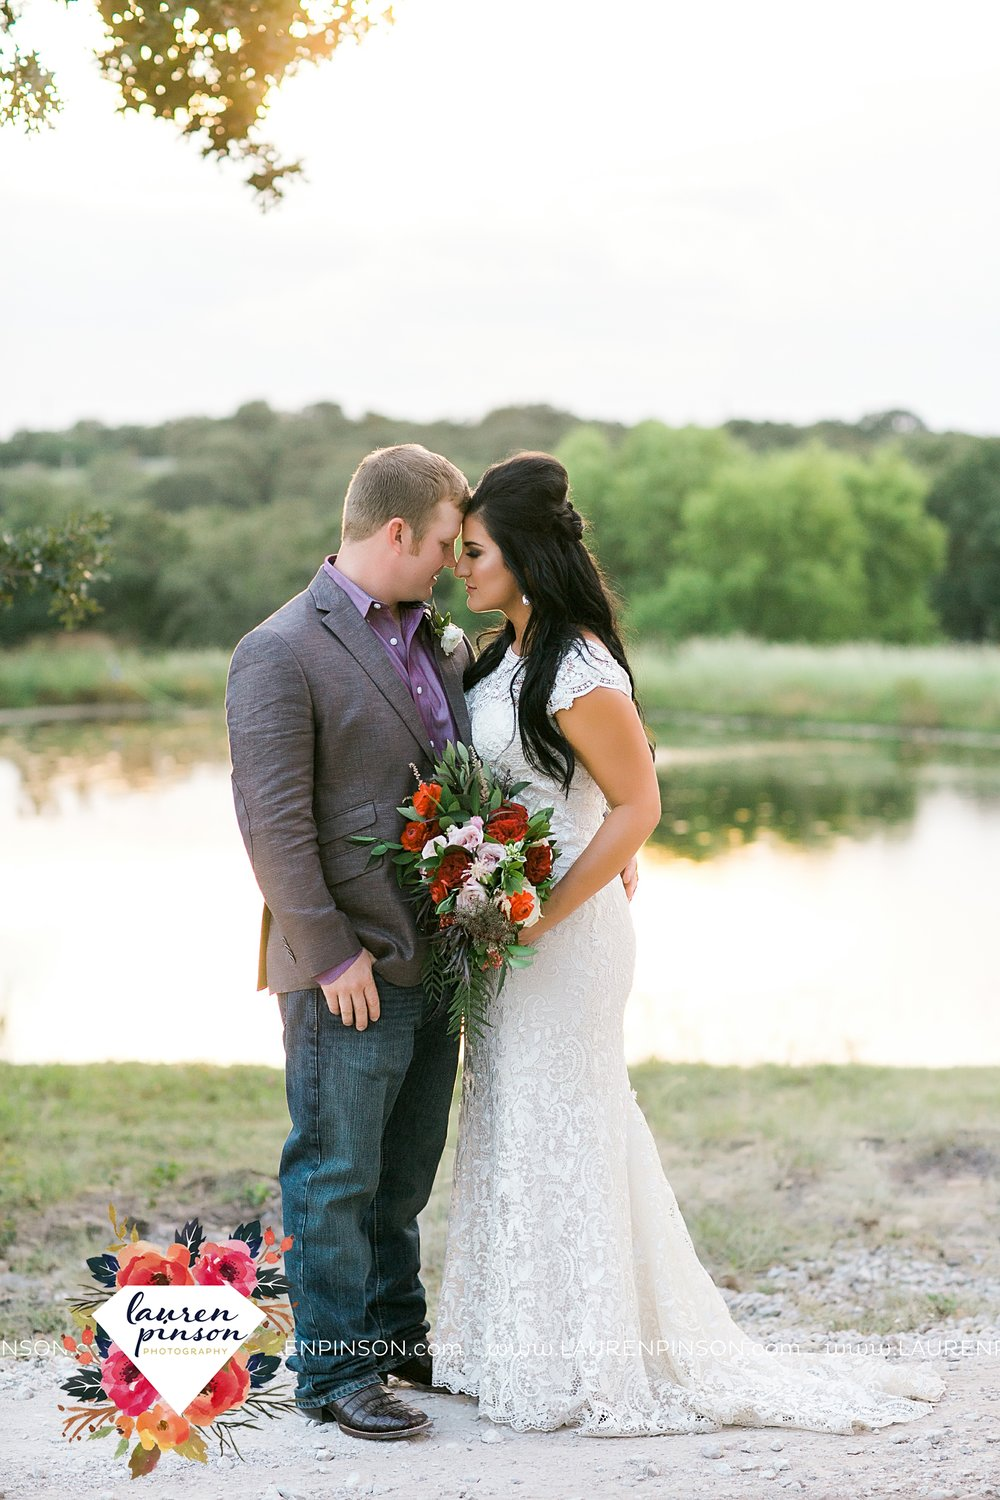 springtown-texas-wedding-at-oak-knoll-ranch-dfw-and-wichita-falls-wedding-photography-lauren-pinson_3552.jpg